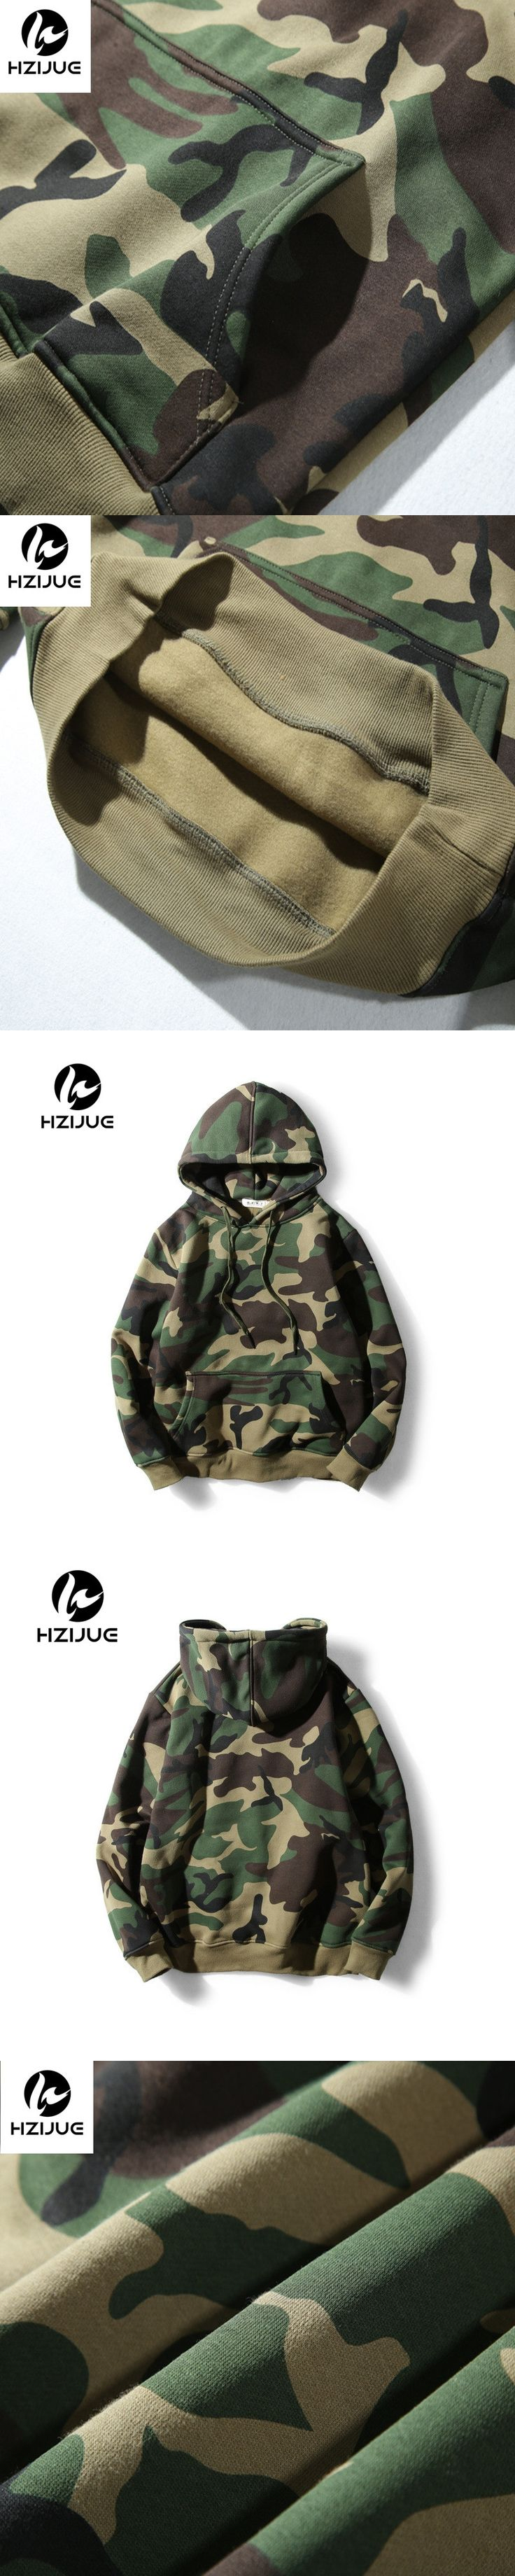 HZIJUE Army Green Camouflage Hoodies 2017 Winter Mens Camo Fleece Pullover Hooded Sweatshirts Hip Hop Swag Cotton Streetwear